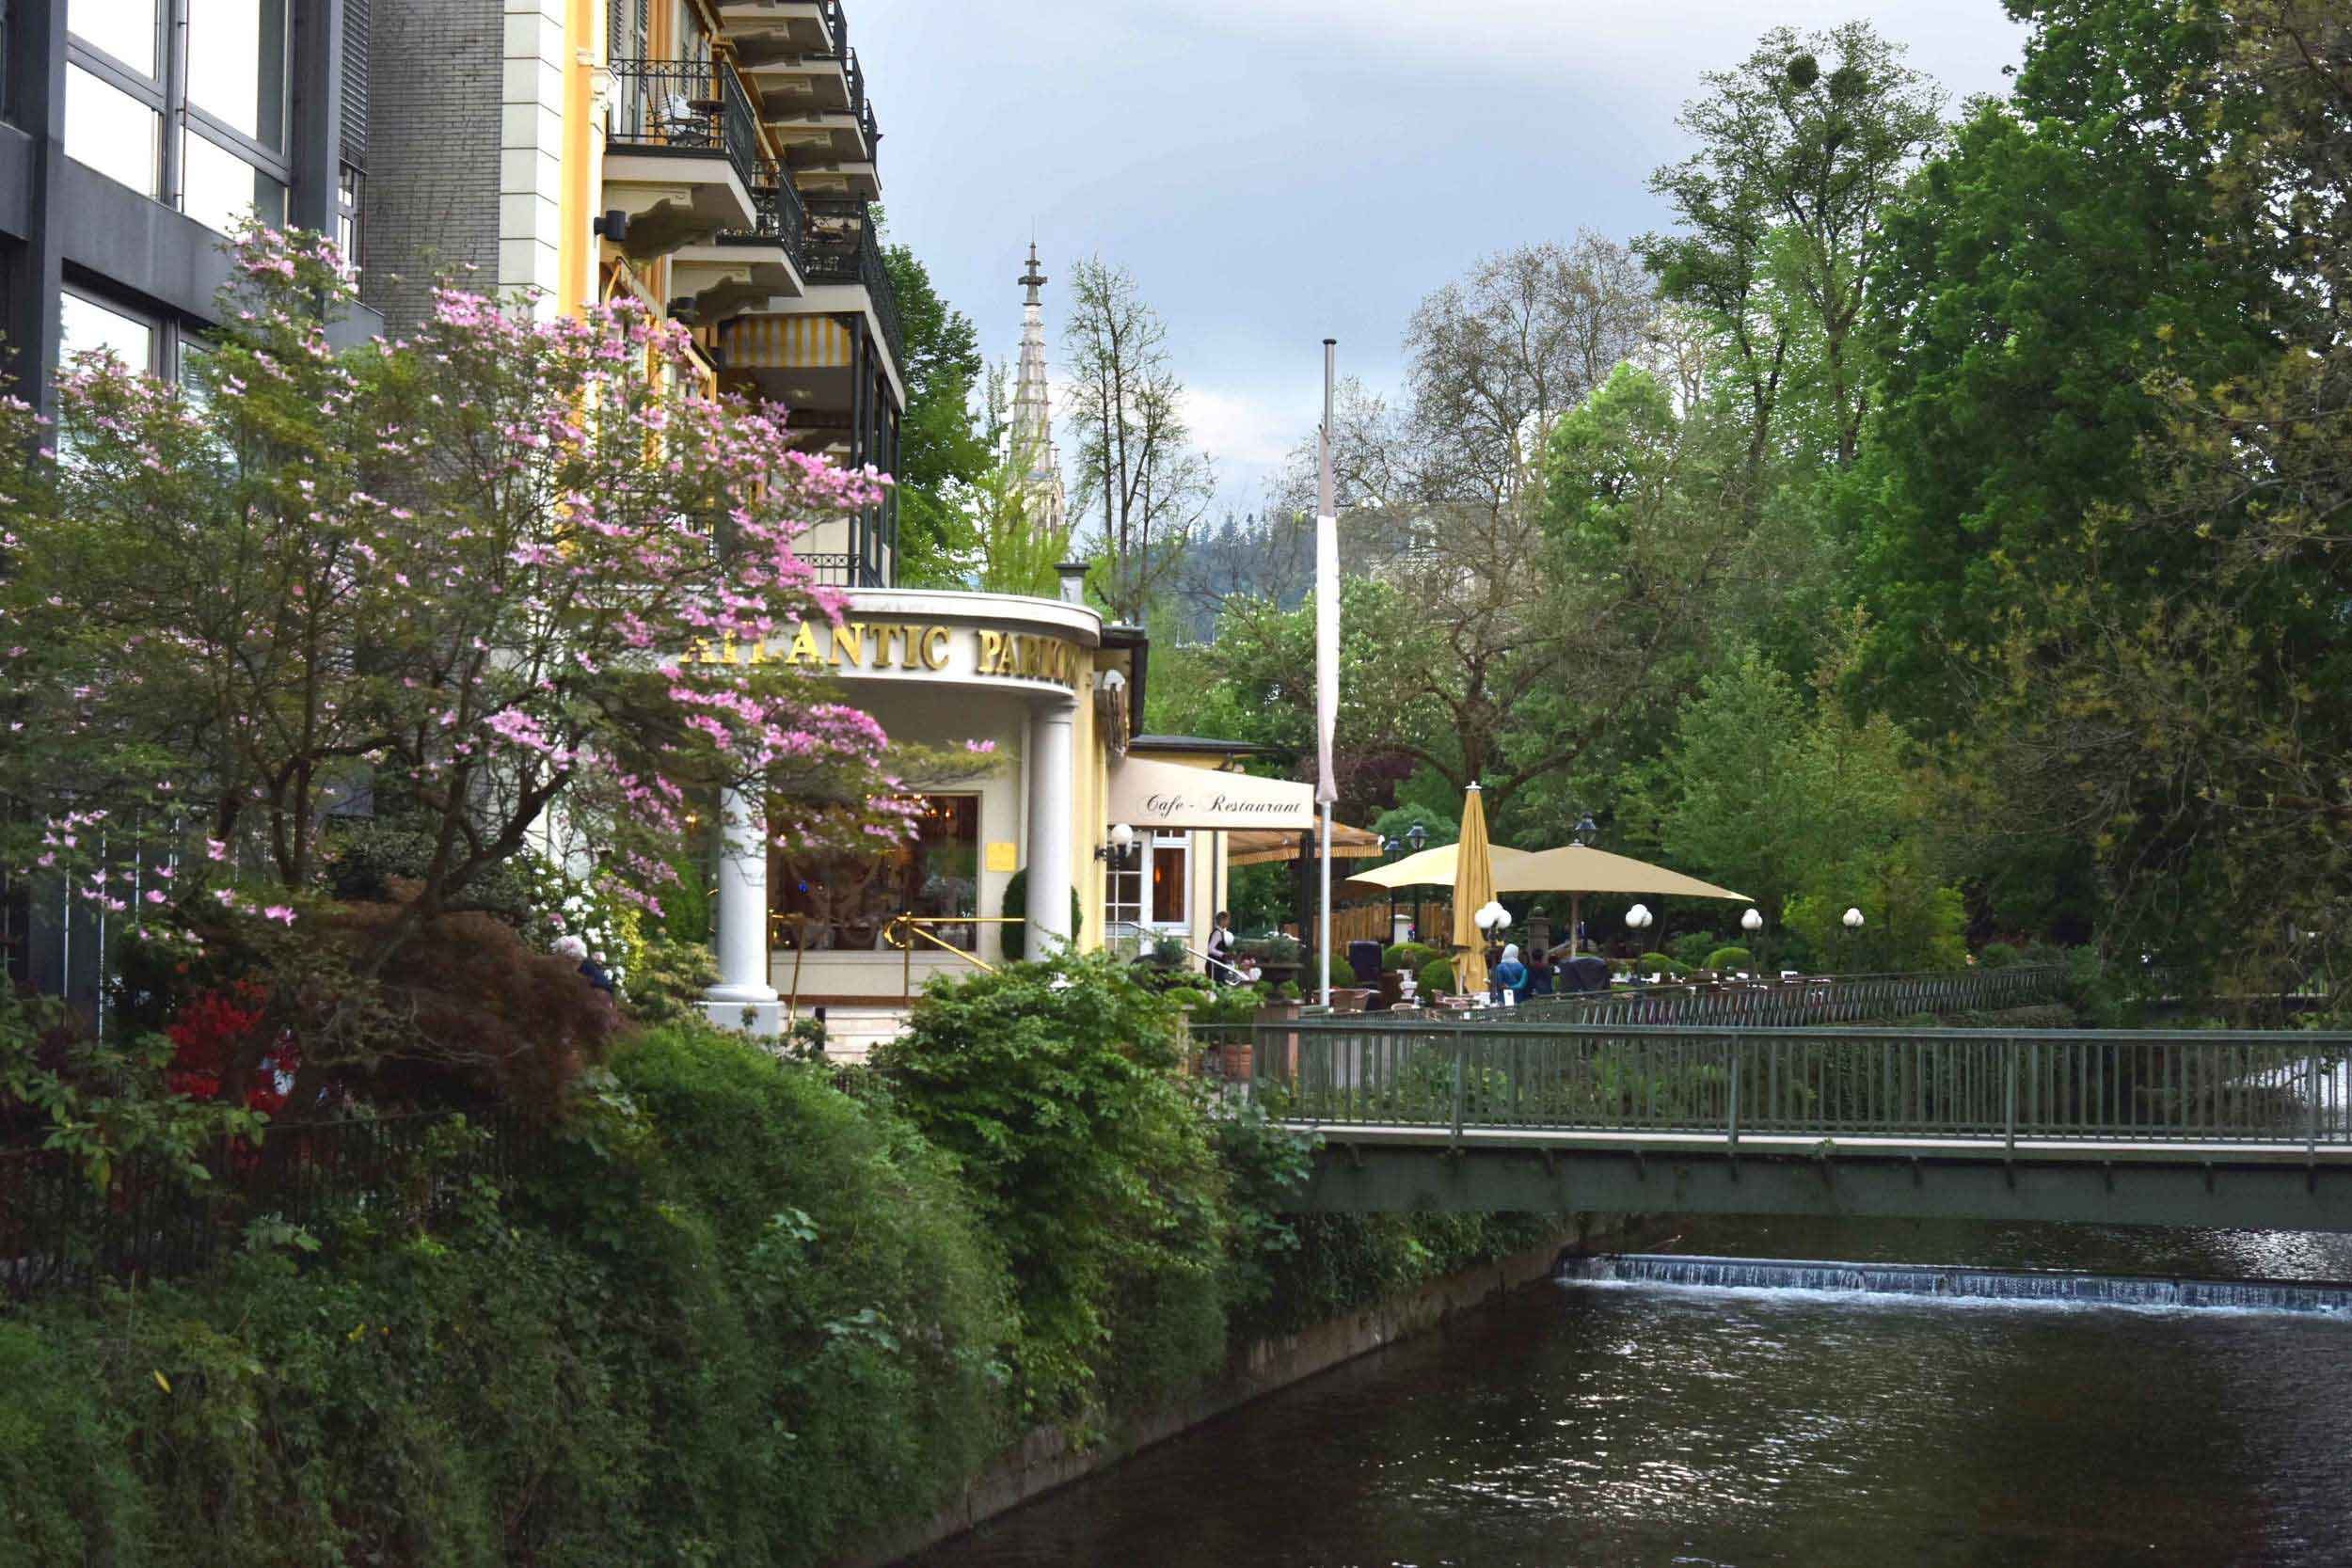 Atlantic Park hotel, Baden Baden, Germany. Image©thingstodot.com